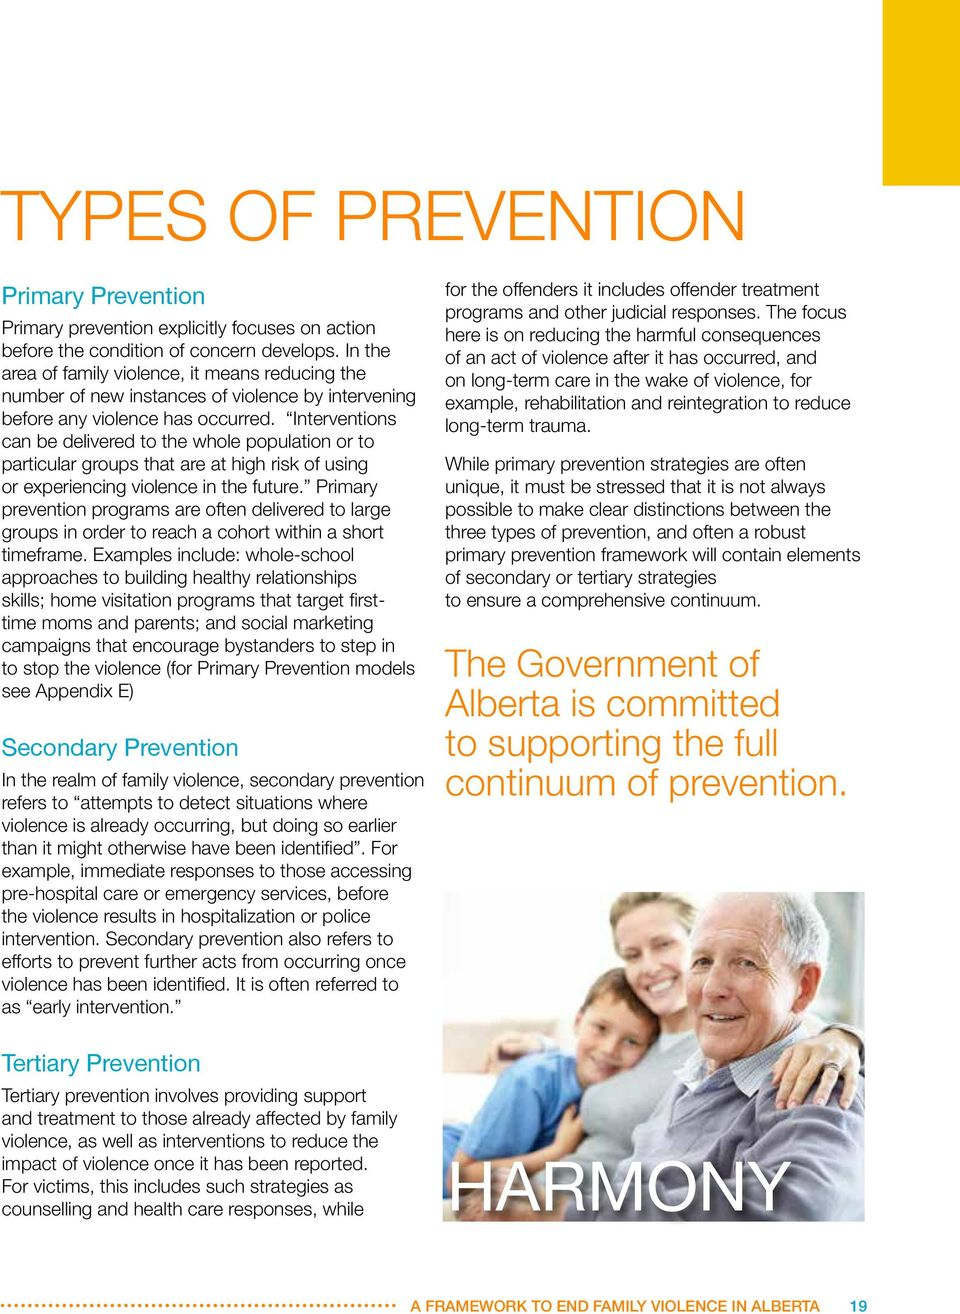 Interventions can be delivered to the whole population or to particular groups that are at high risk of using or experiencing violence in the future.